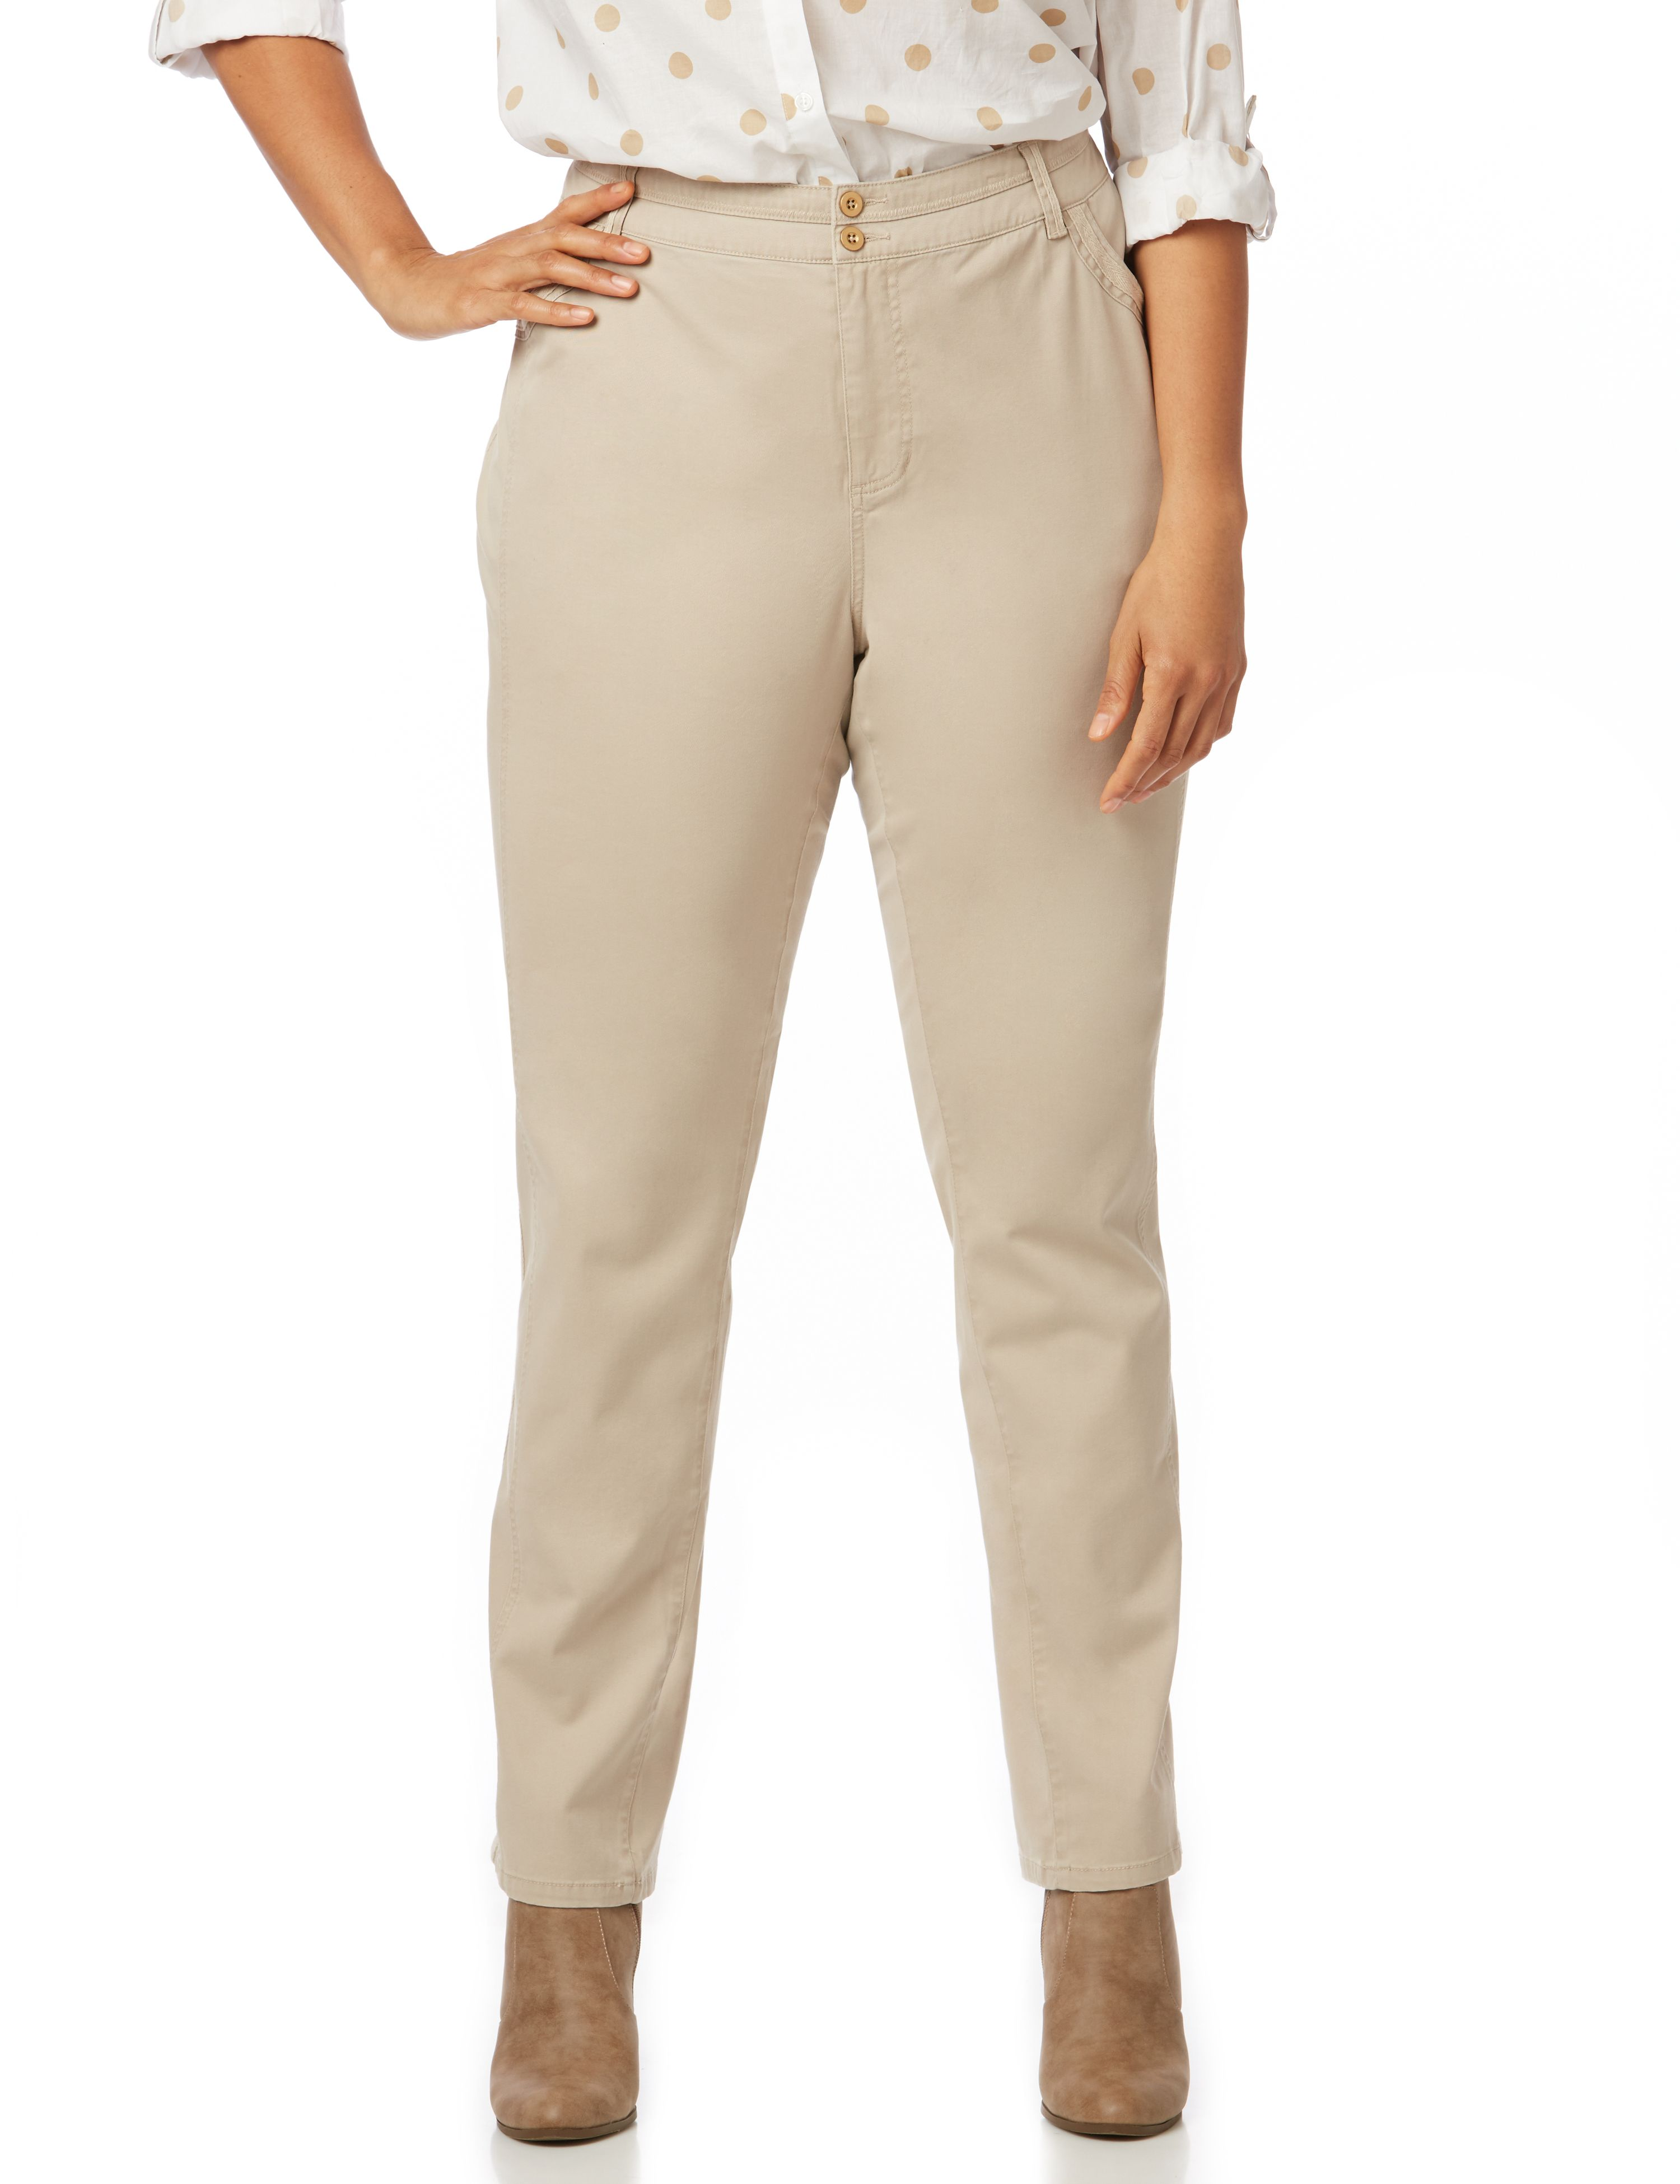 Casual Comfort Pant 1088414 CHINO WITH TWILL TAPE DETAI MP-300092468